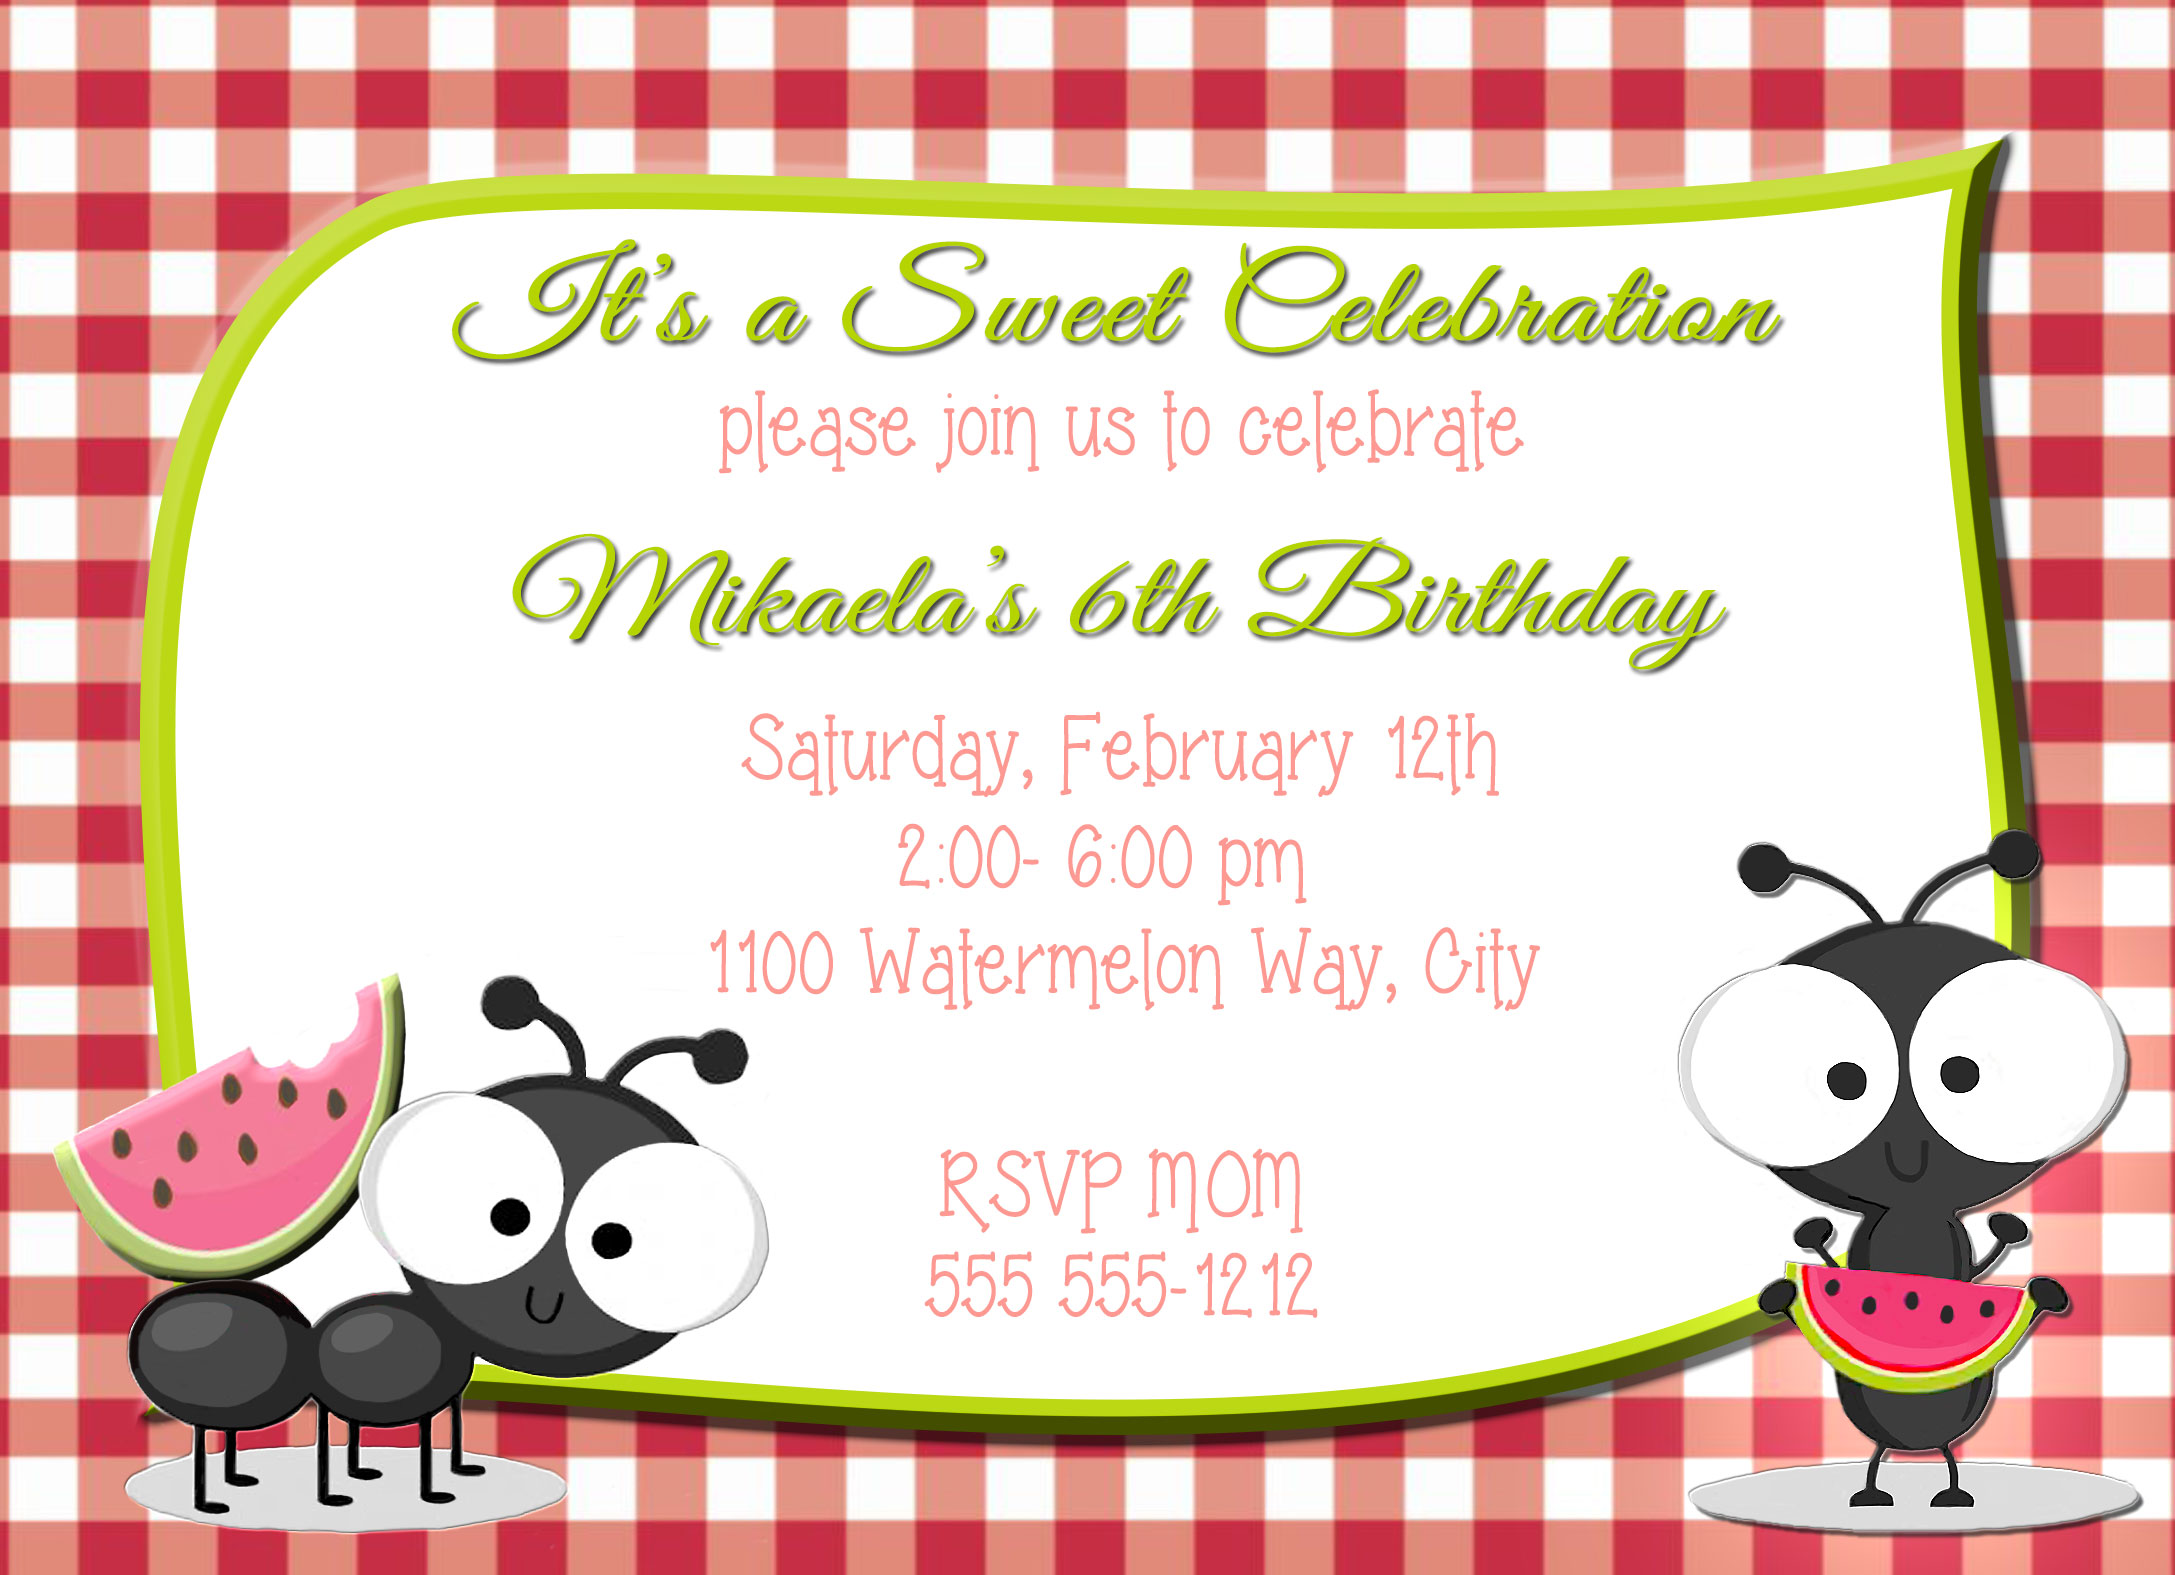 picnic ants watermelon personalized birthday invitation 1 sided